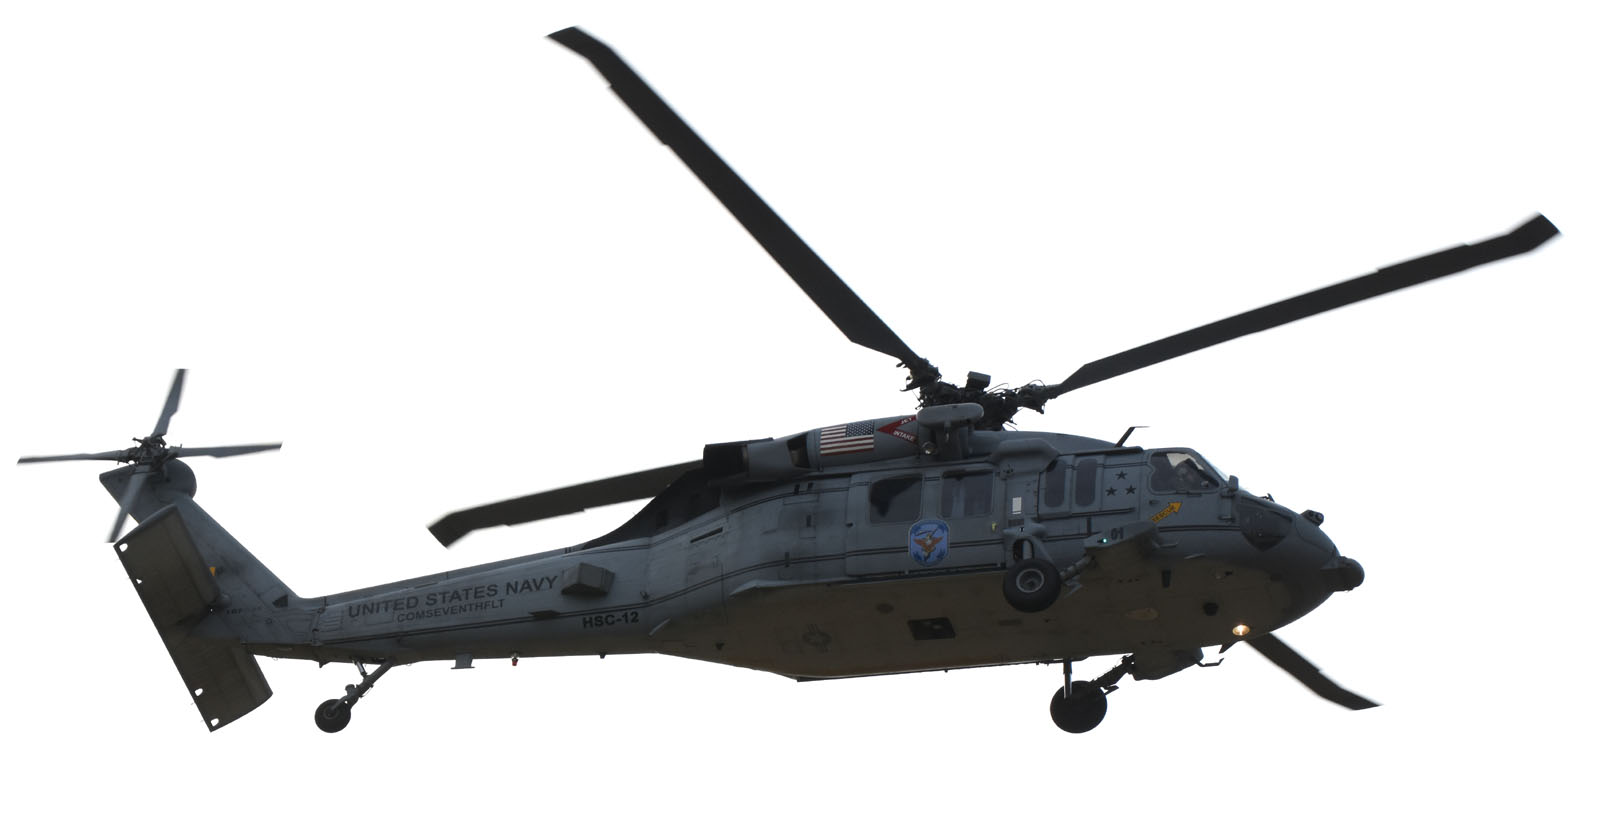 Mh60s161205g123